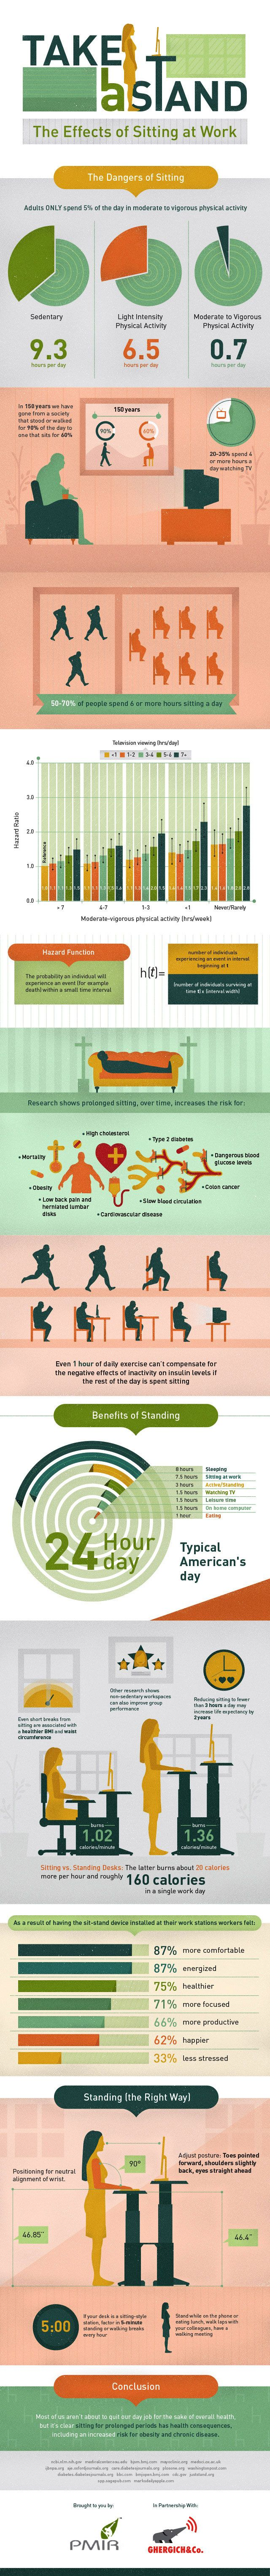 Sitting All Day Is Really, Really Bad For You (Infographic)